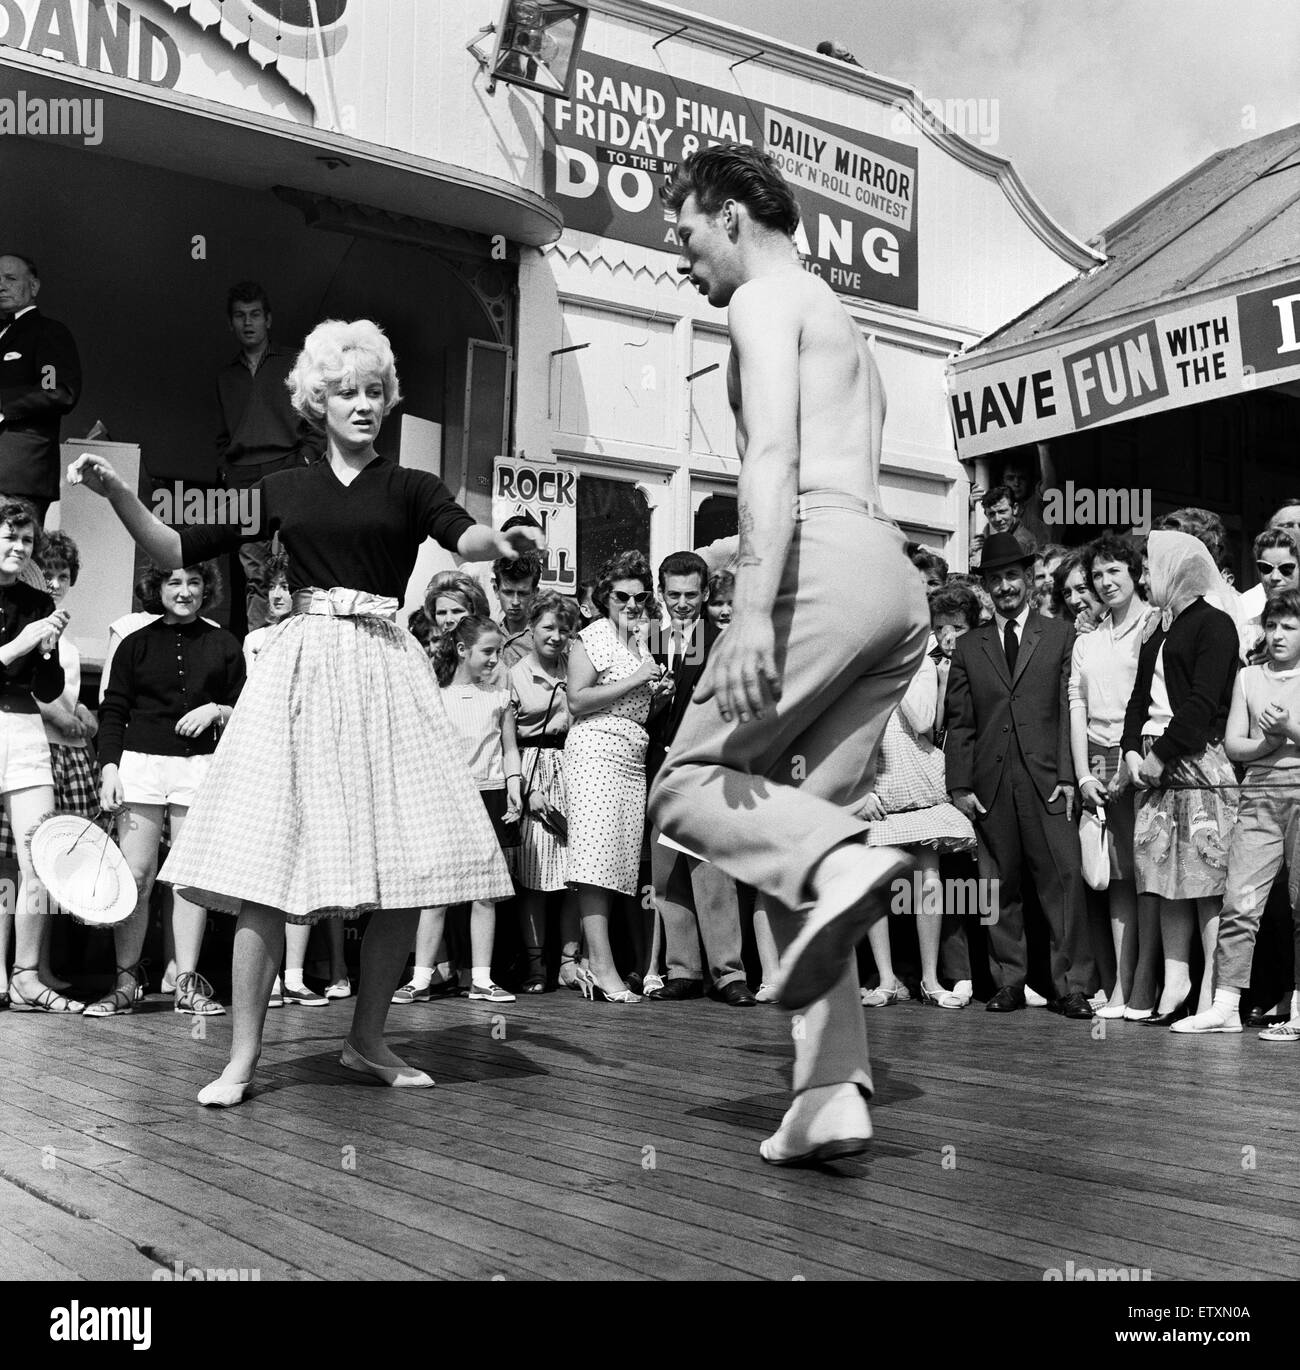 Dancing during a rock and roll session on the central pier ...